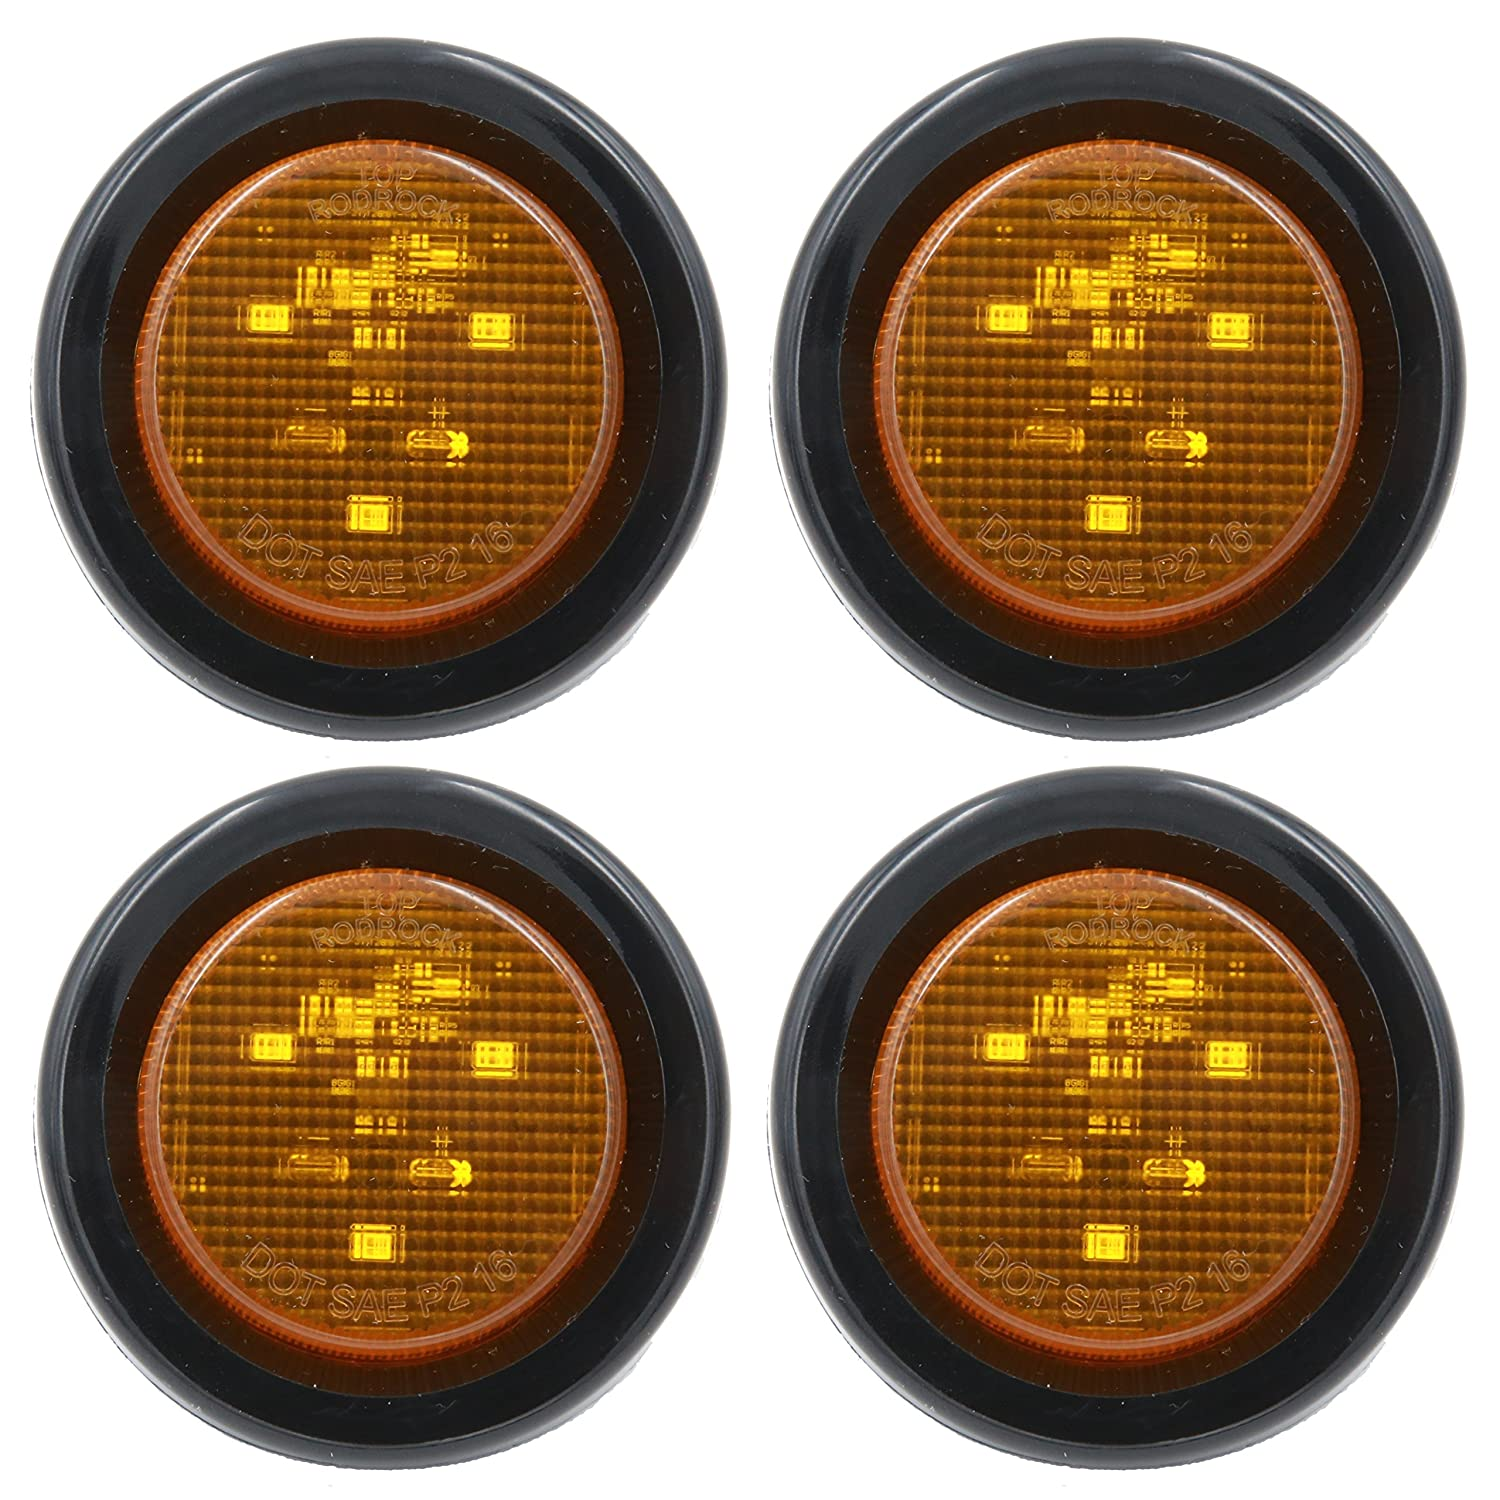 """2' """" PEAKTOW Round LED Submersible Marker Lights Front Side Rear Marker Indicators. Light for Car, Truck, Van, Trailer, RV, Boat, Taillight Brake Stop Lamp 12V with Grommets and Plugs (4pcs Amber) PeakTow Trailer Parts"""